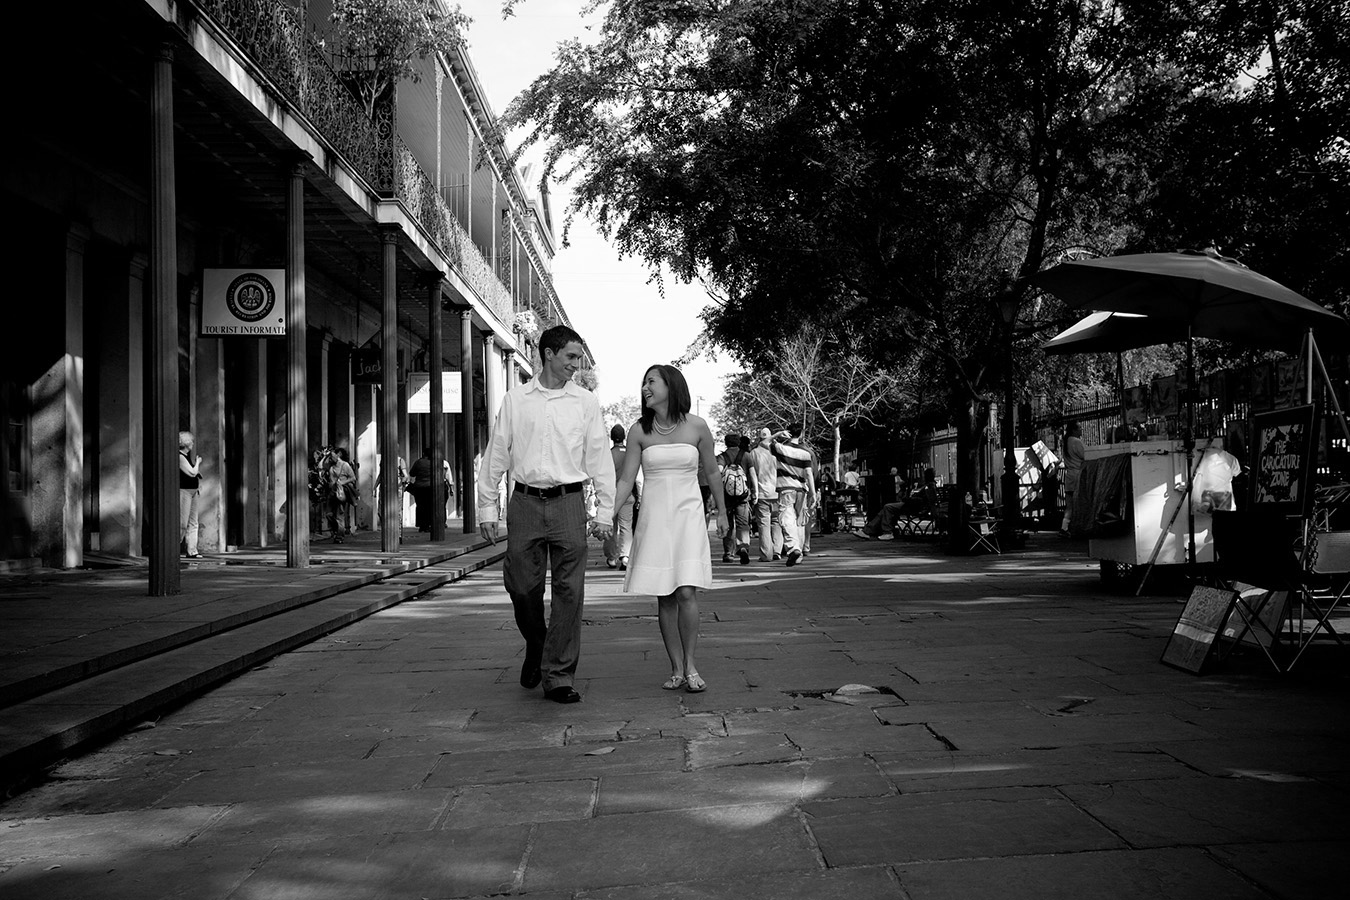 A strolls thru the French Quarter near Jackson Square. | Photo by Jessica The Photographer.